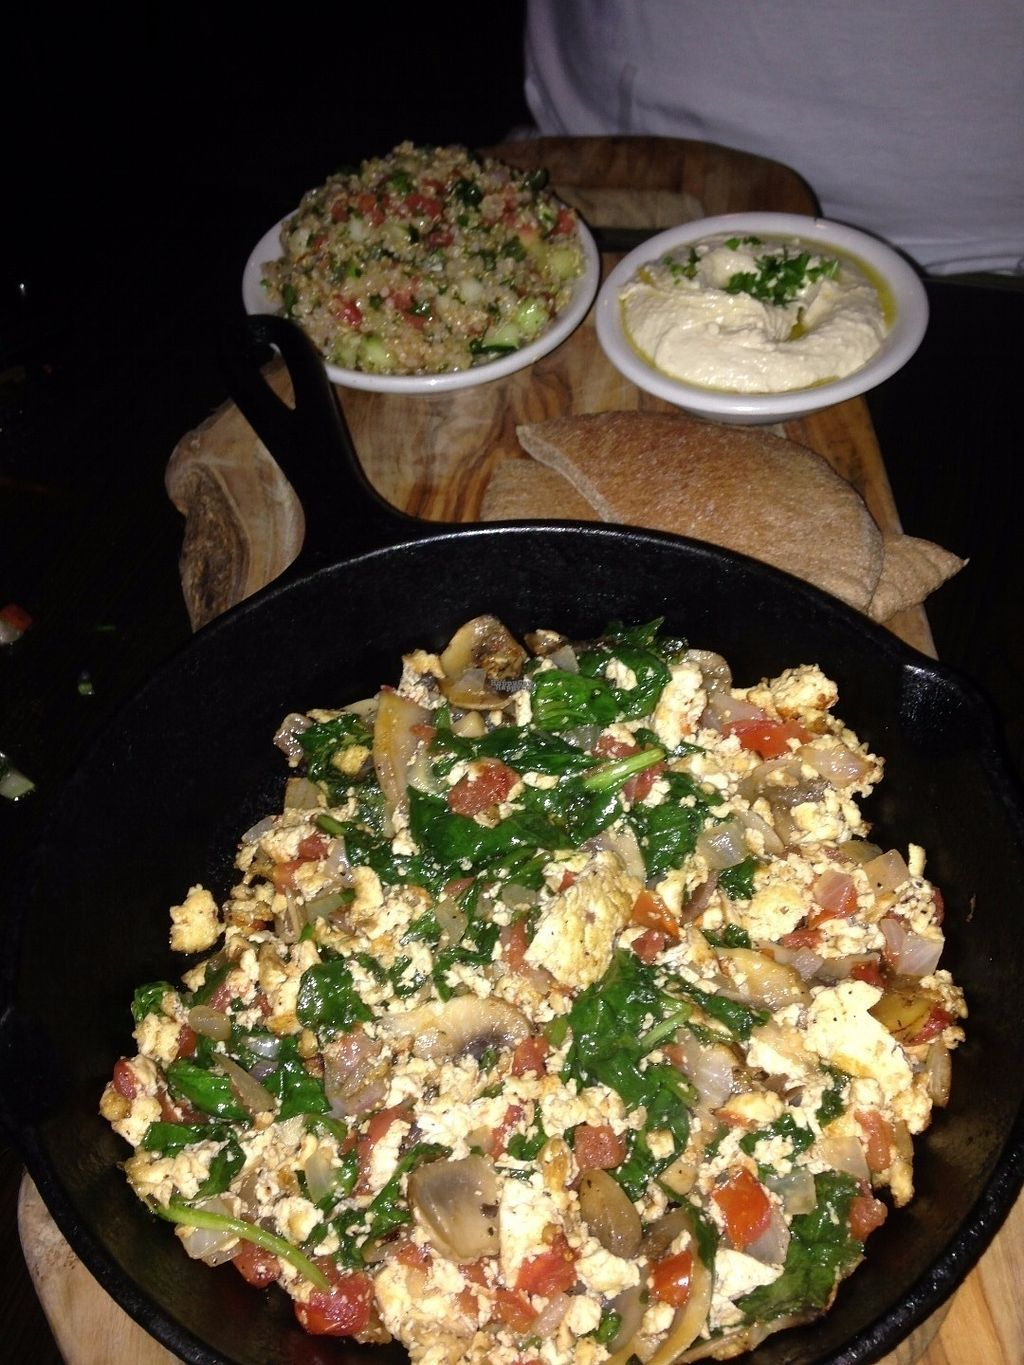 """Photo of Falafel Bistro and Wine Bar  by <a href=""""/members/profile/giant%20bunnie"""">giant bunnie</a> <br/>Falafel Bistro and Wine Bar <br/> September 2, 2016  - <a href='/contact/abuse/image/16764/172974'>Report</a>"""